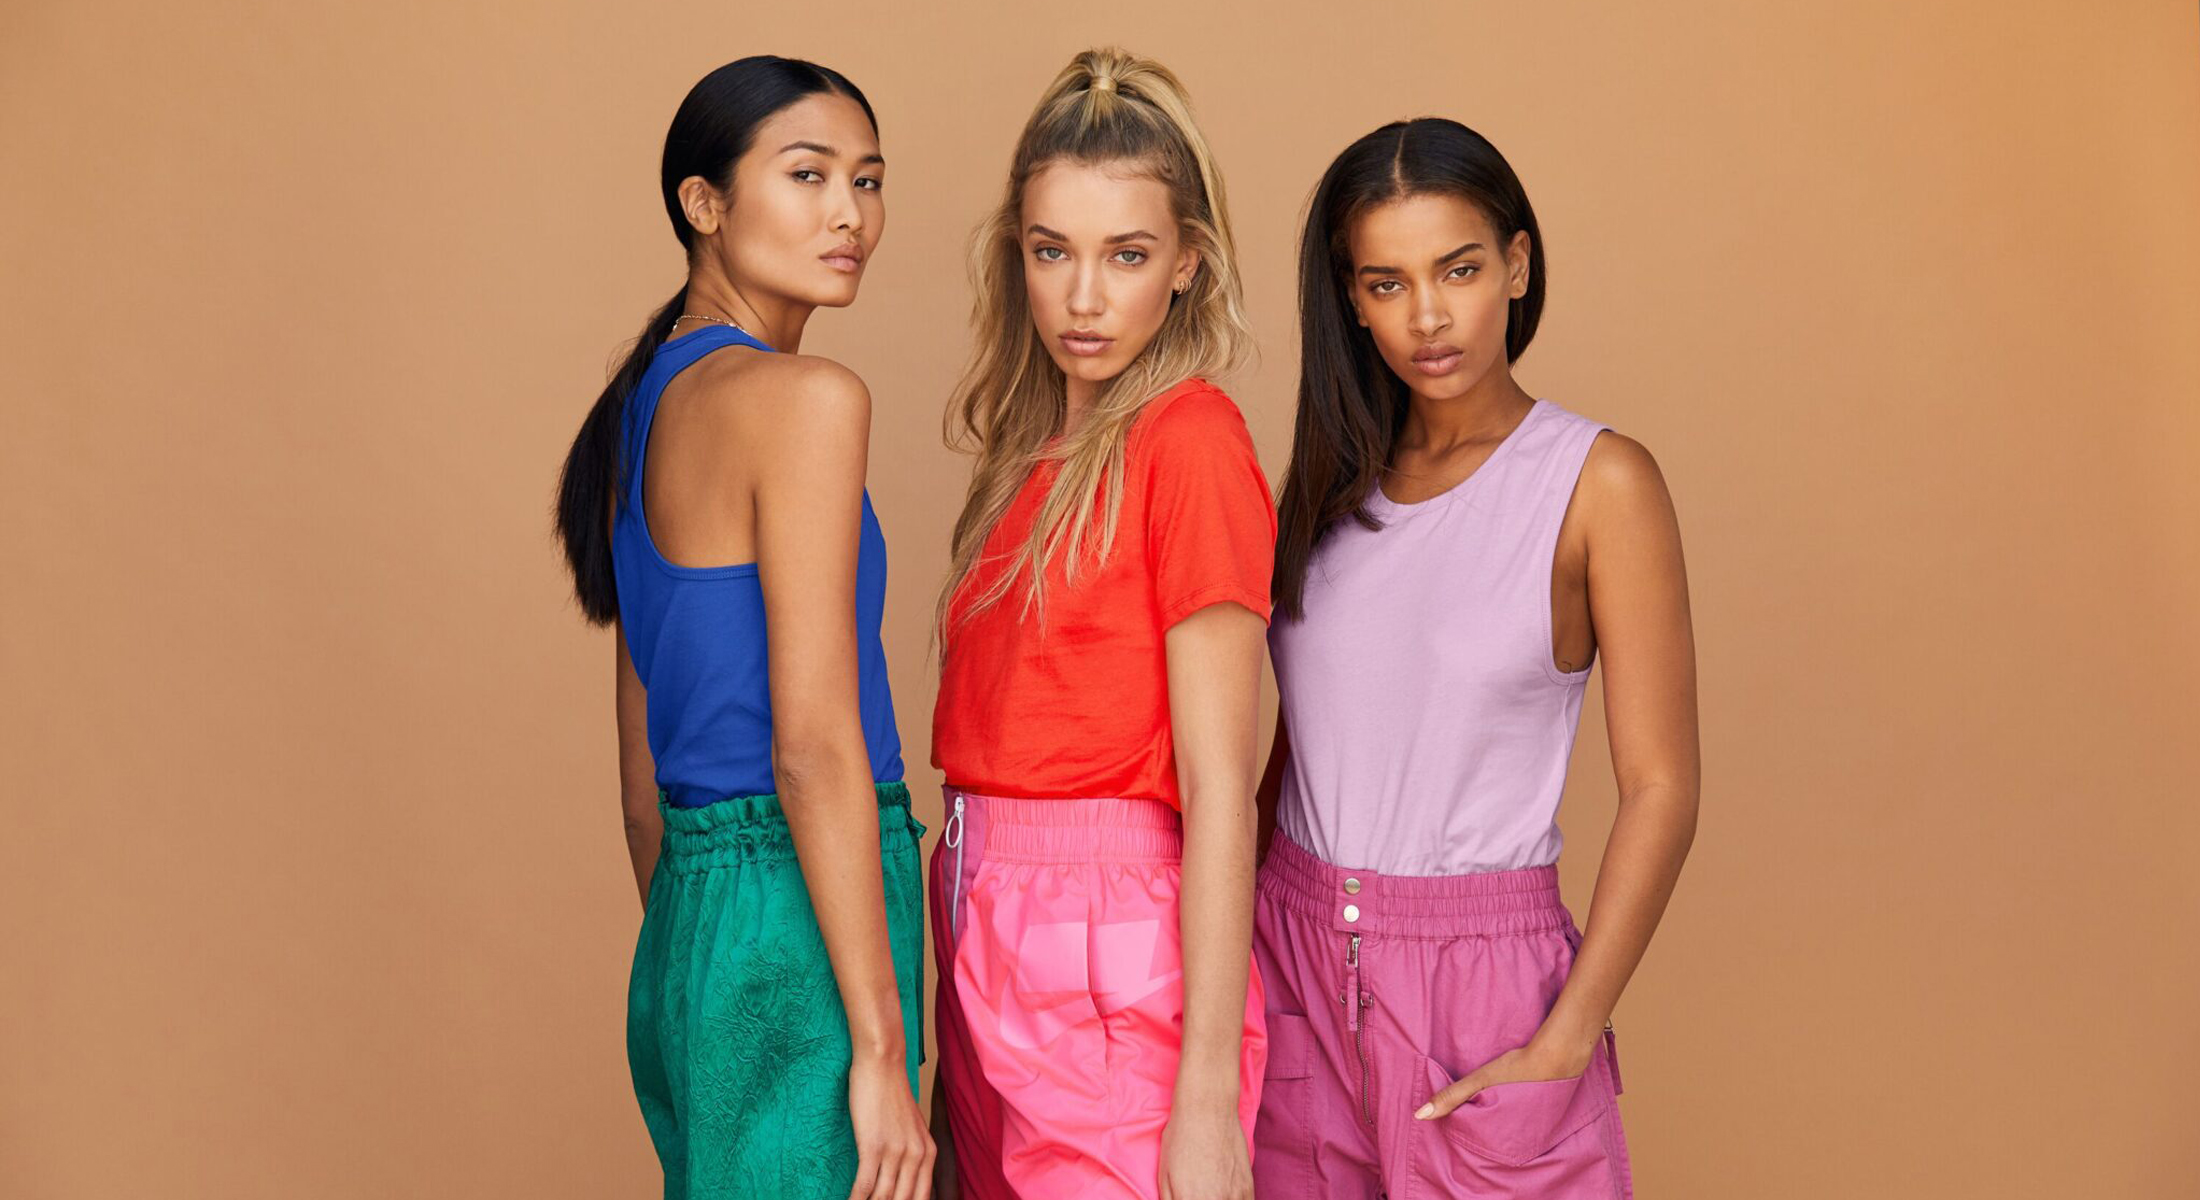 Introducing The Female Edit: A New Women's Capsule Collection